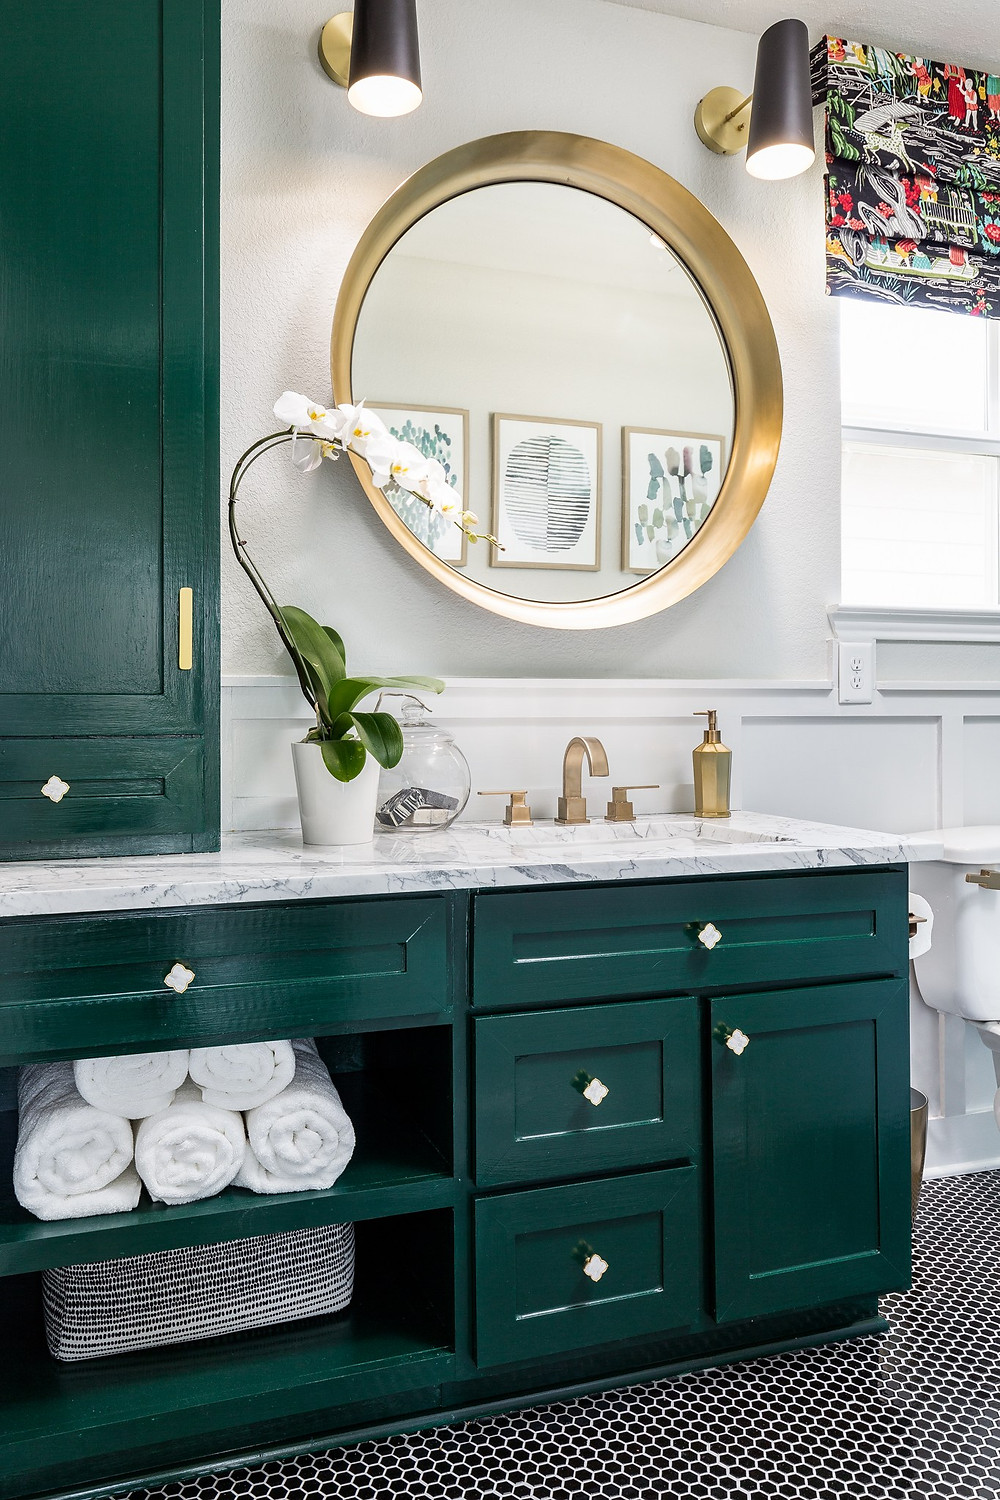 Guest bathroom with green cabinetry and marble countertops